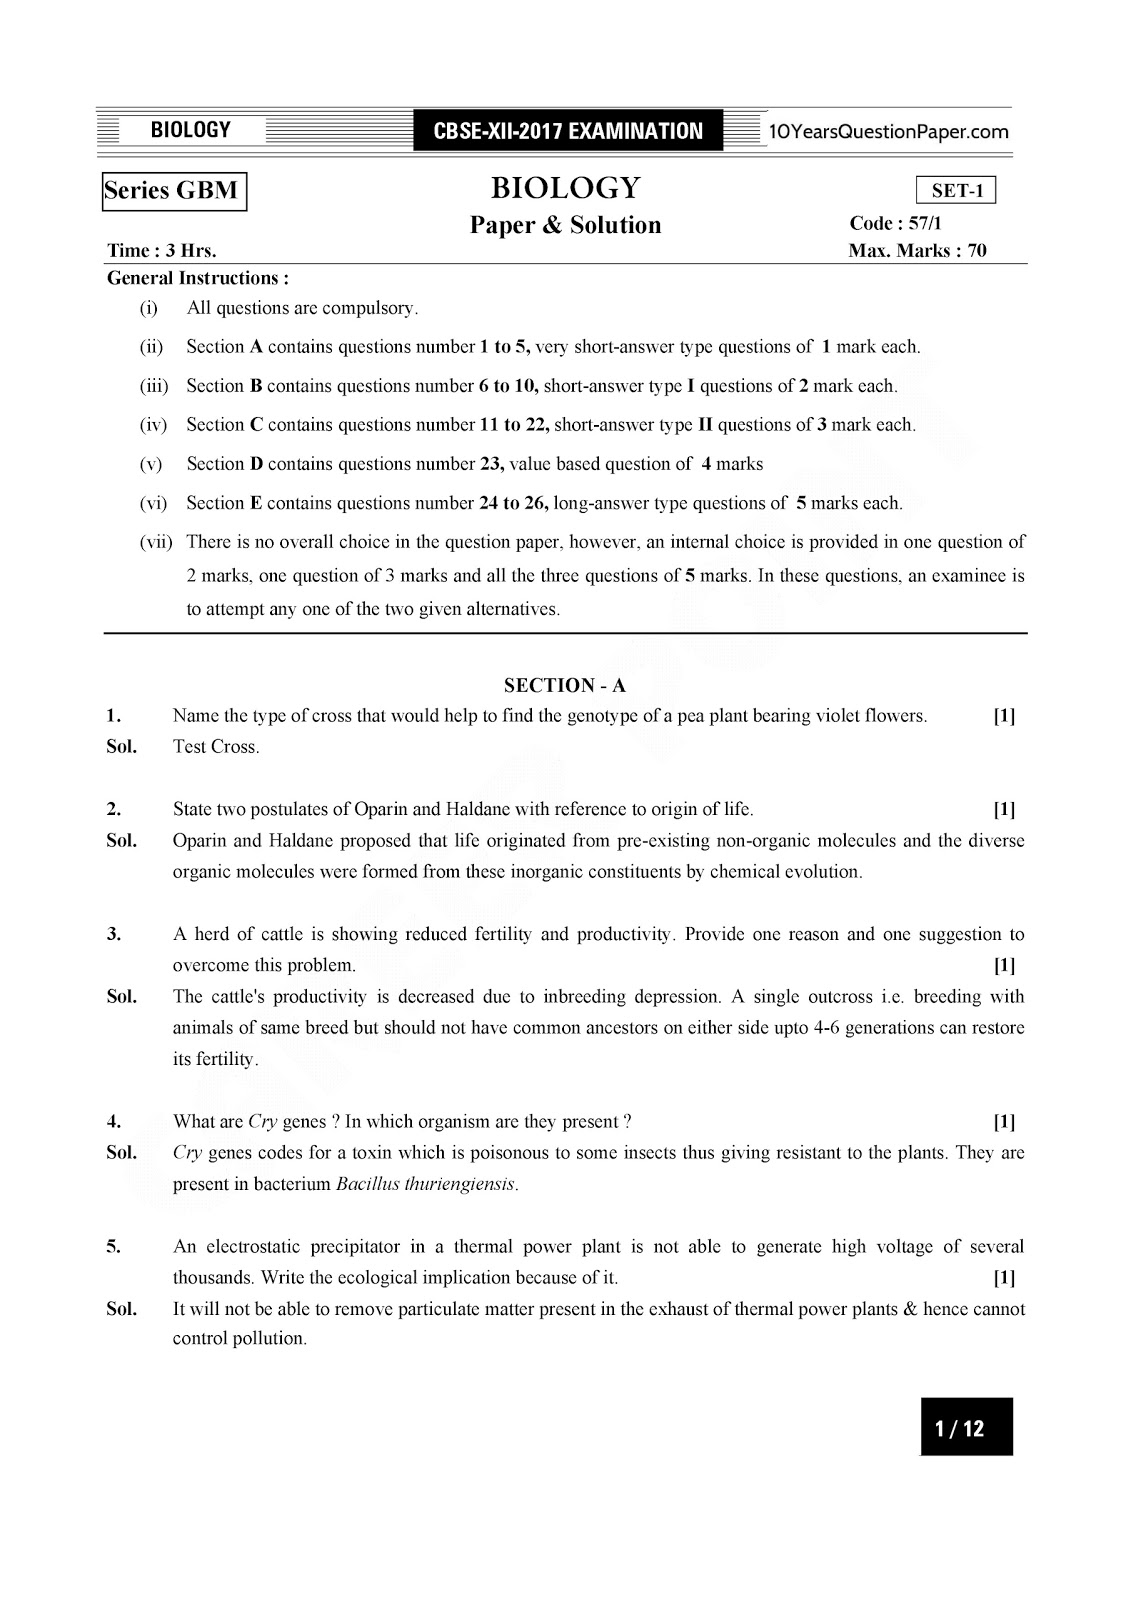 cbse class 12th 2017 Biology Solved paper